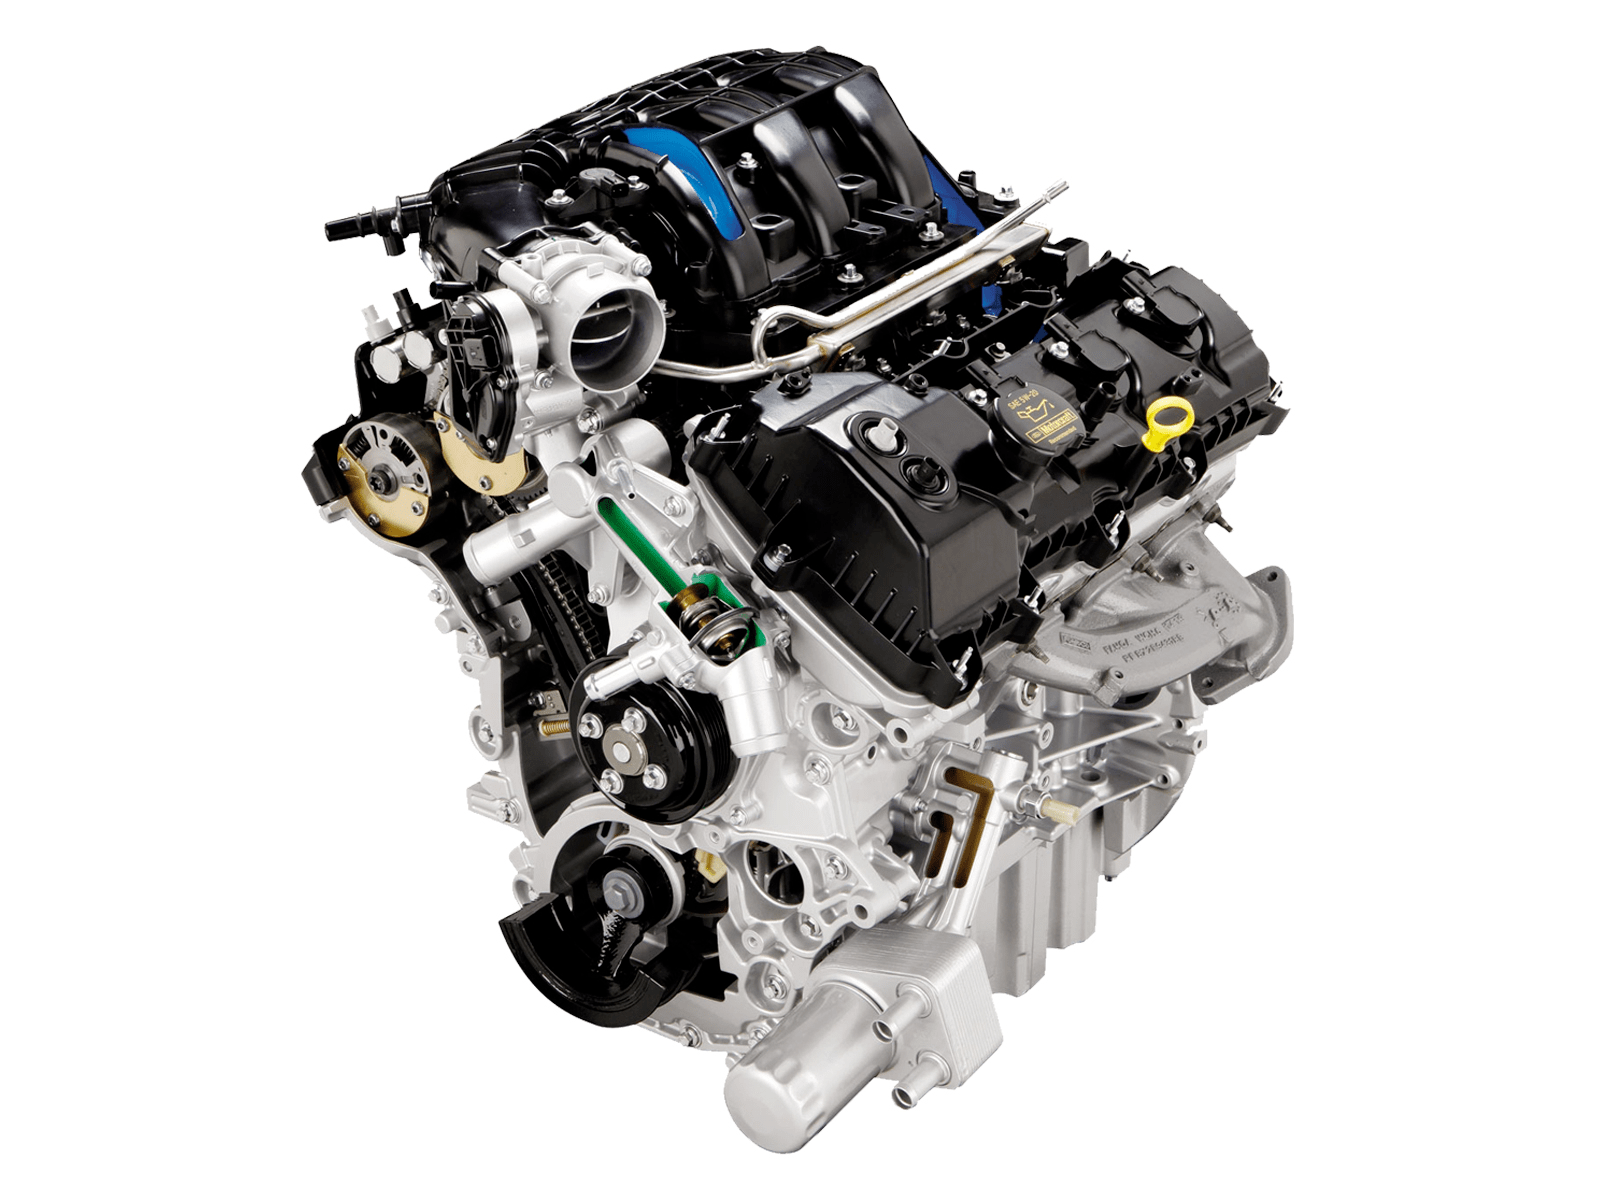 Mustang owners worldwide will welcome the new world v 6 engine for the ford mustang the ancient 4 0 liter sohc v 6 truck engine that was the base engine